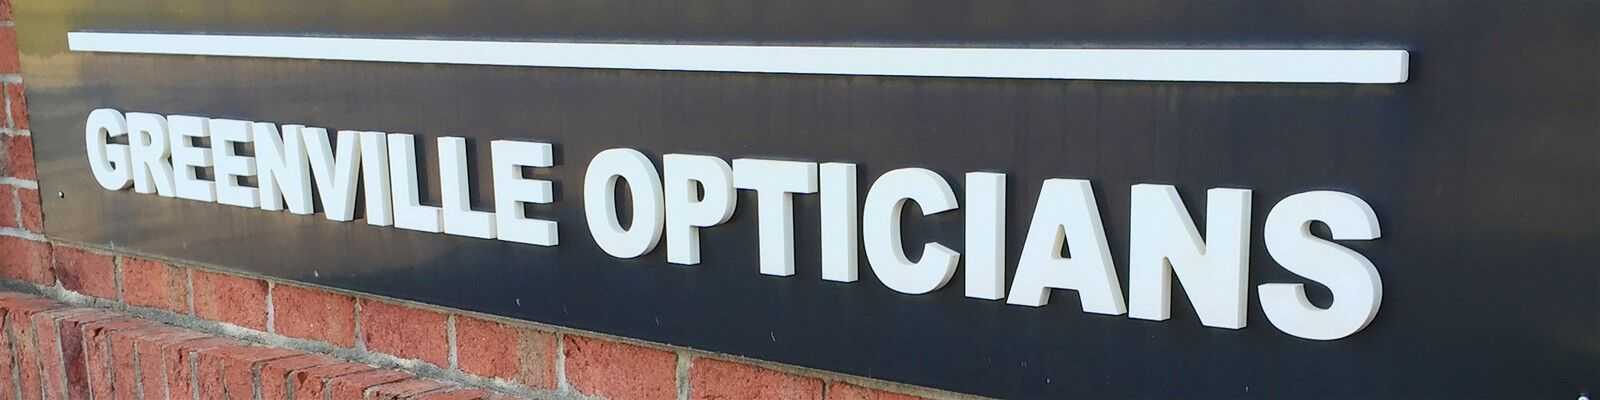 greenville_opticians